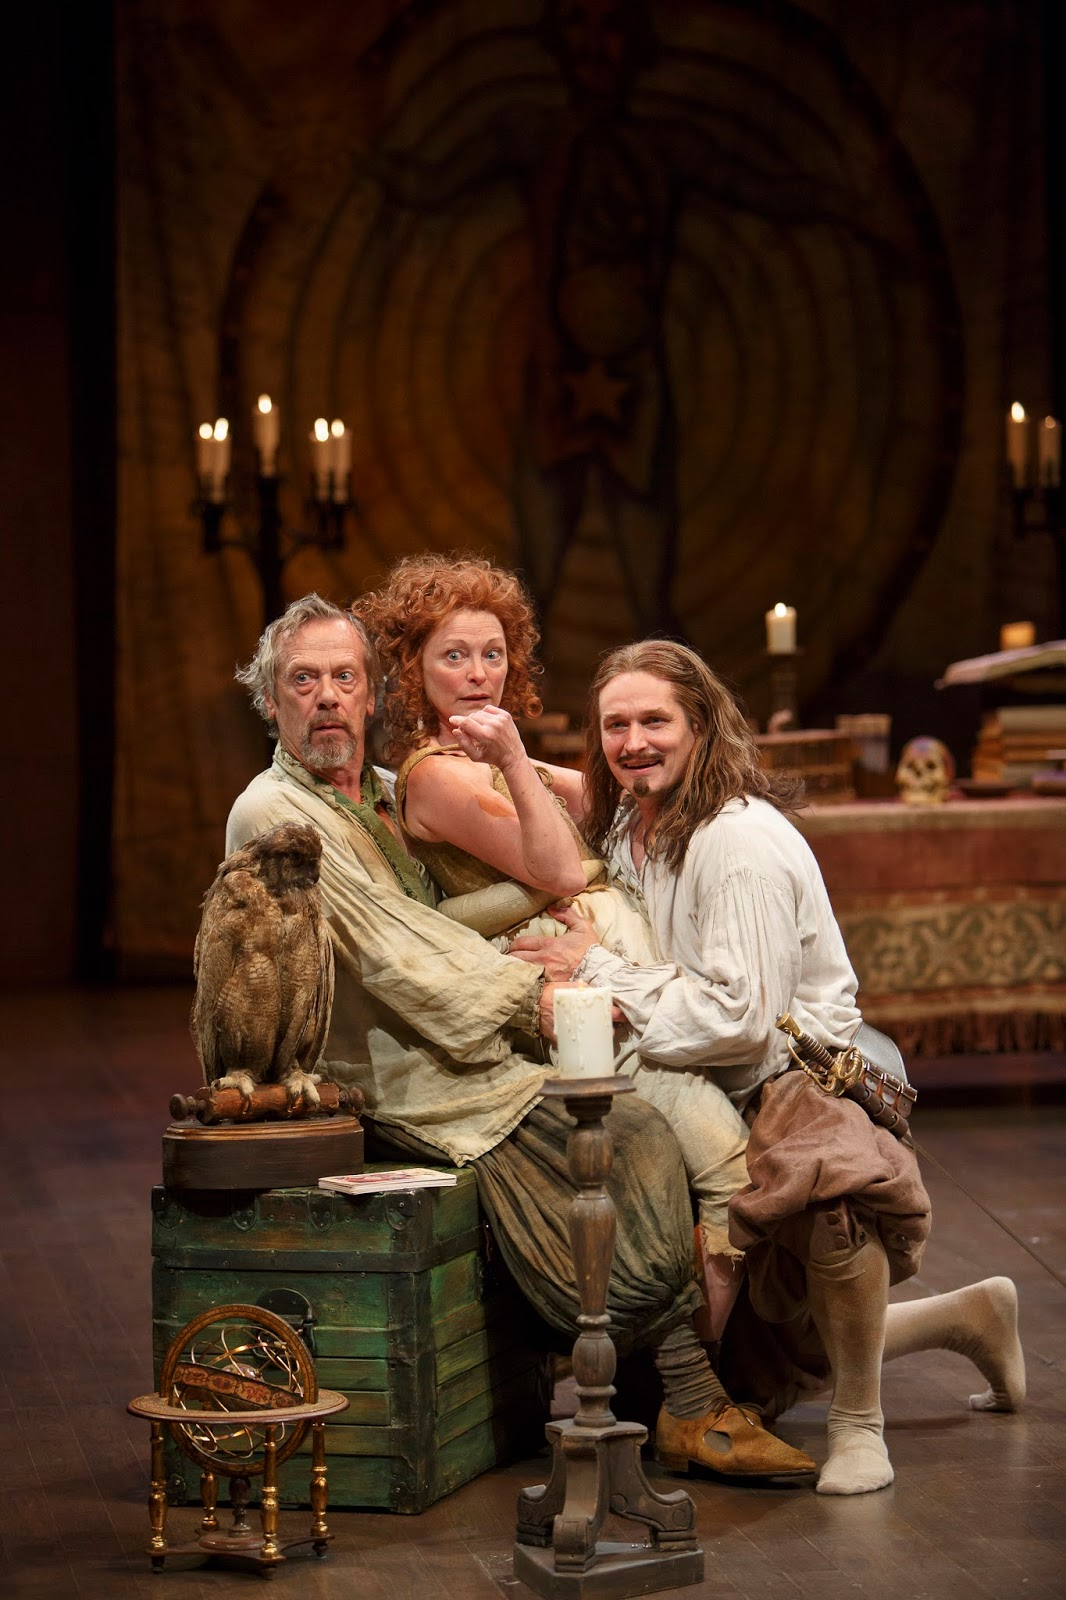 james karas reviews and views the alchemist review of from left stephen ouimette as subtle brigit wilson as dol common and jonathan goad as face photography by david hou the world of the alchemist